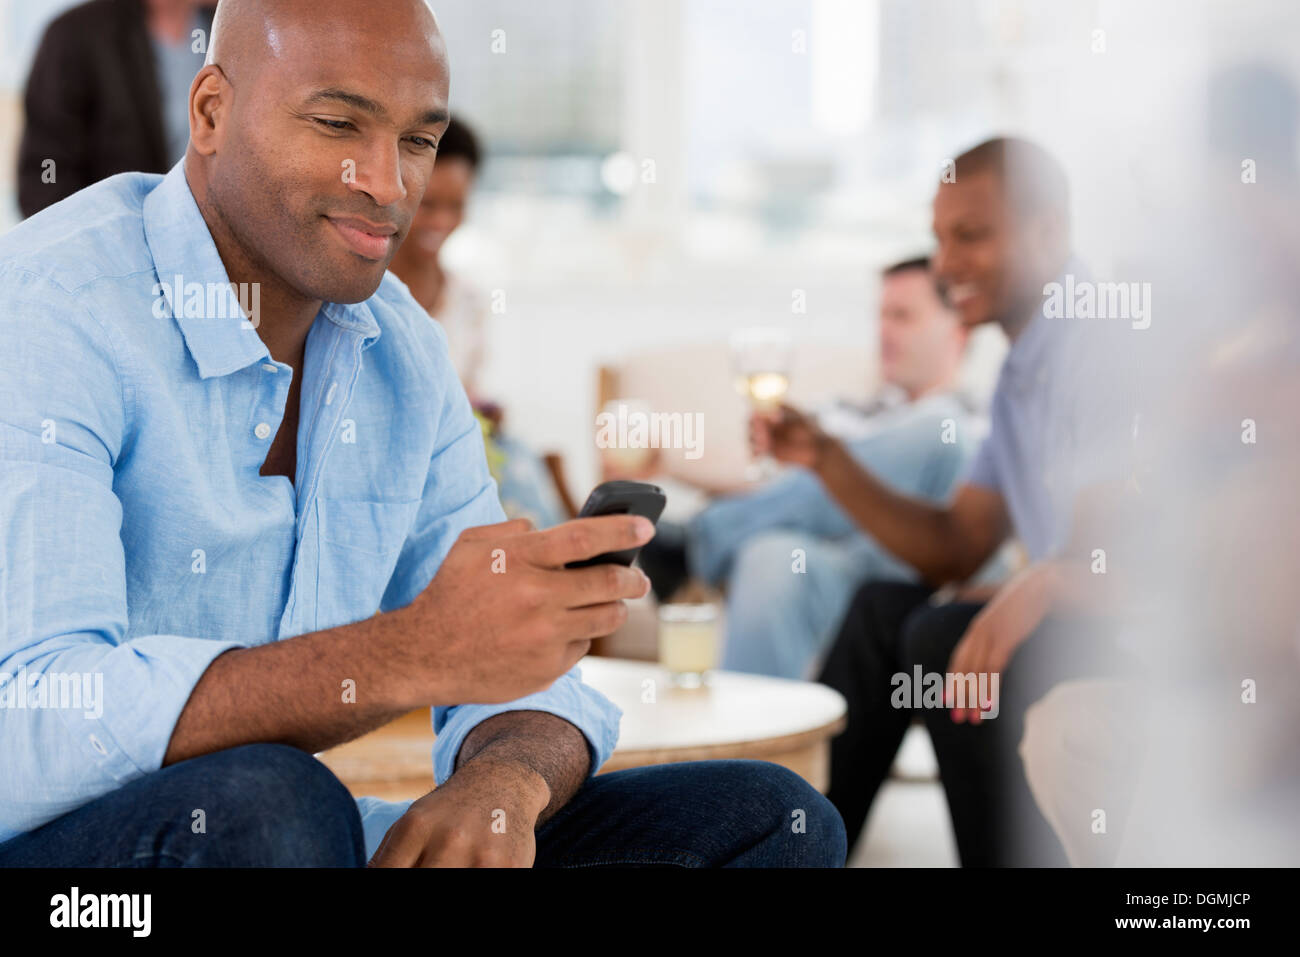 Office event. A man using his smart phone. - Stock Image